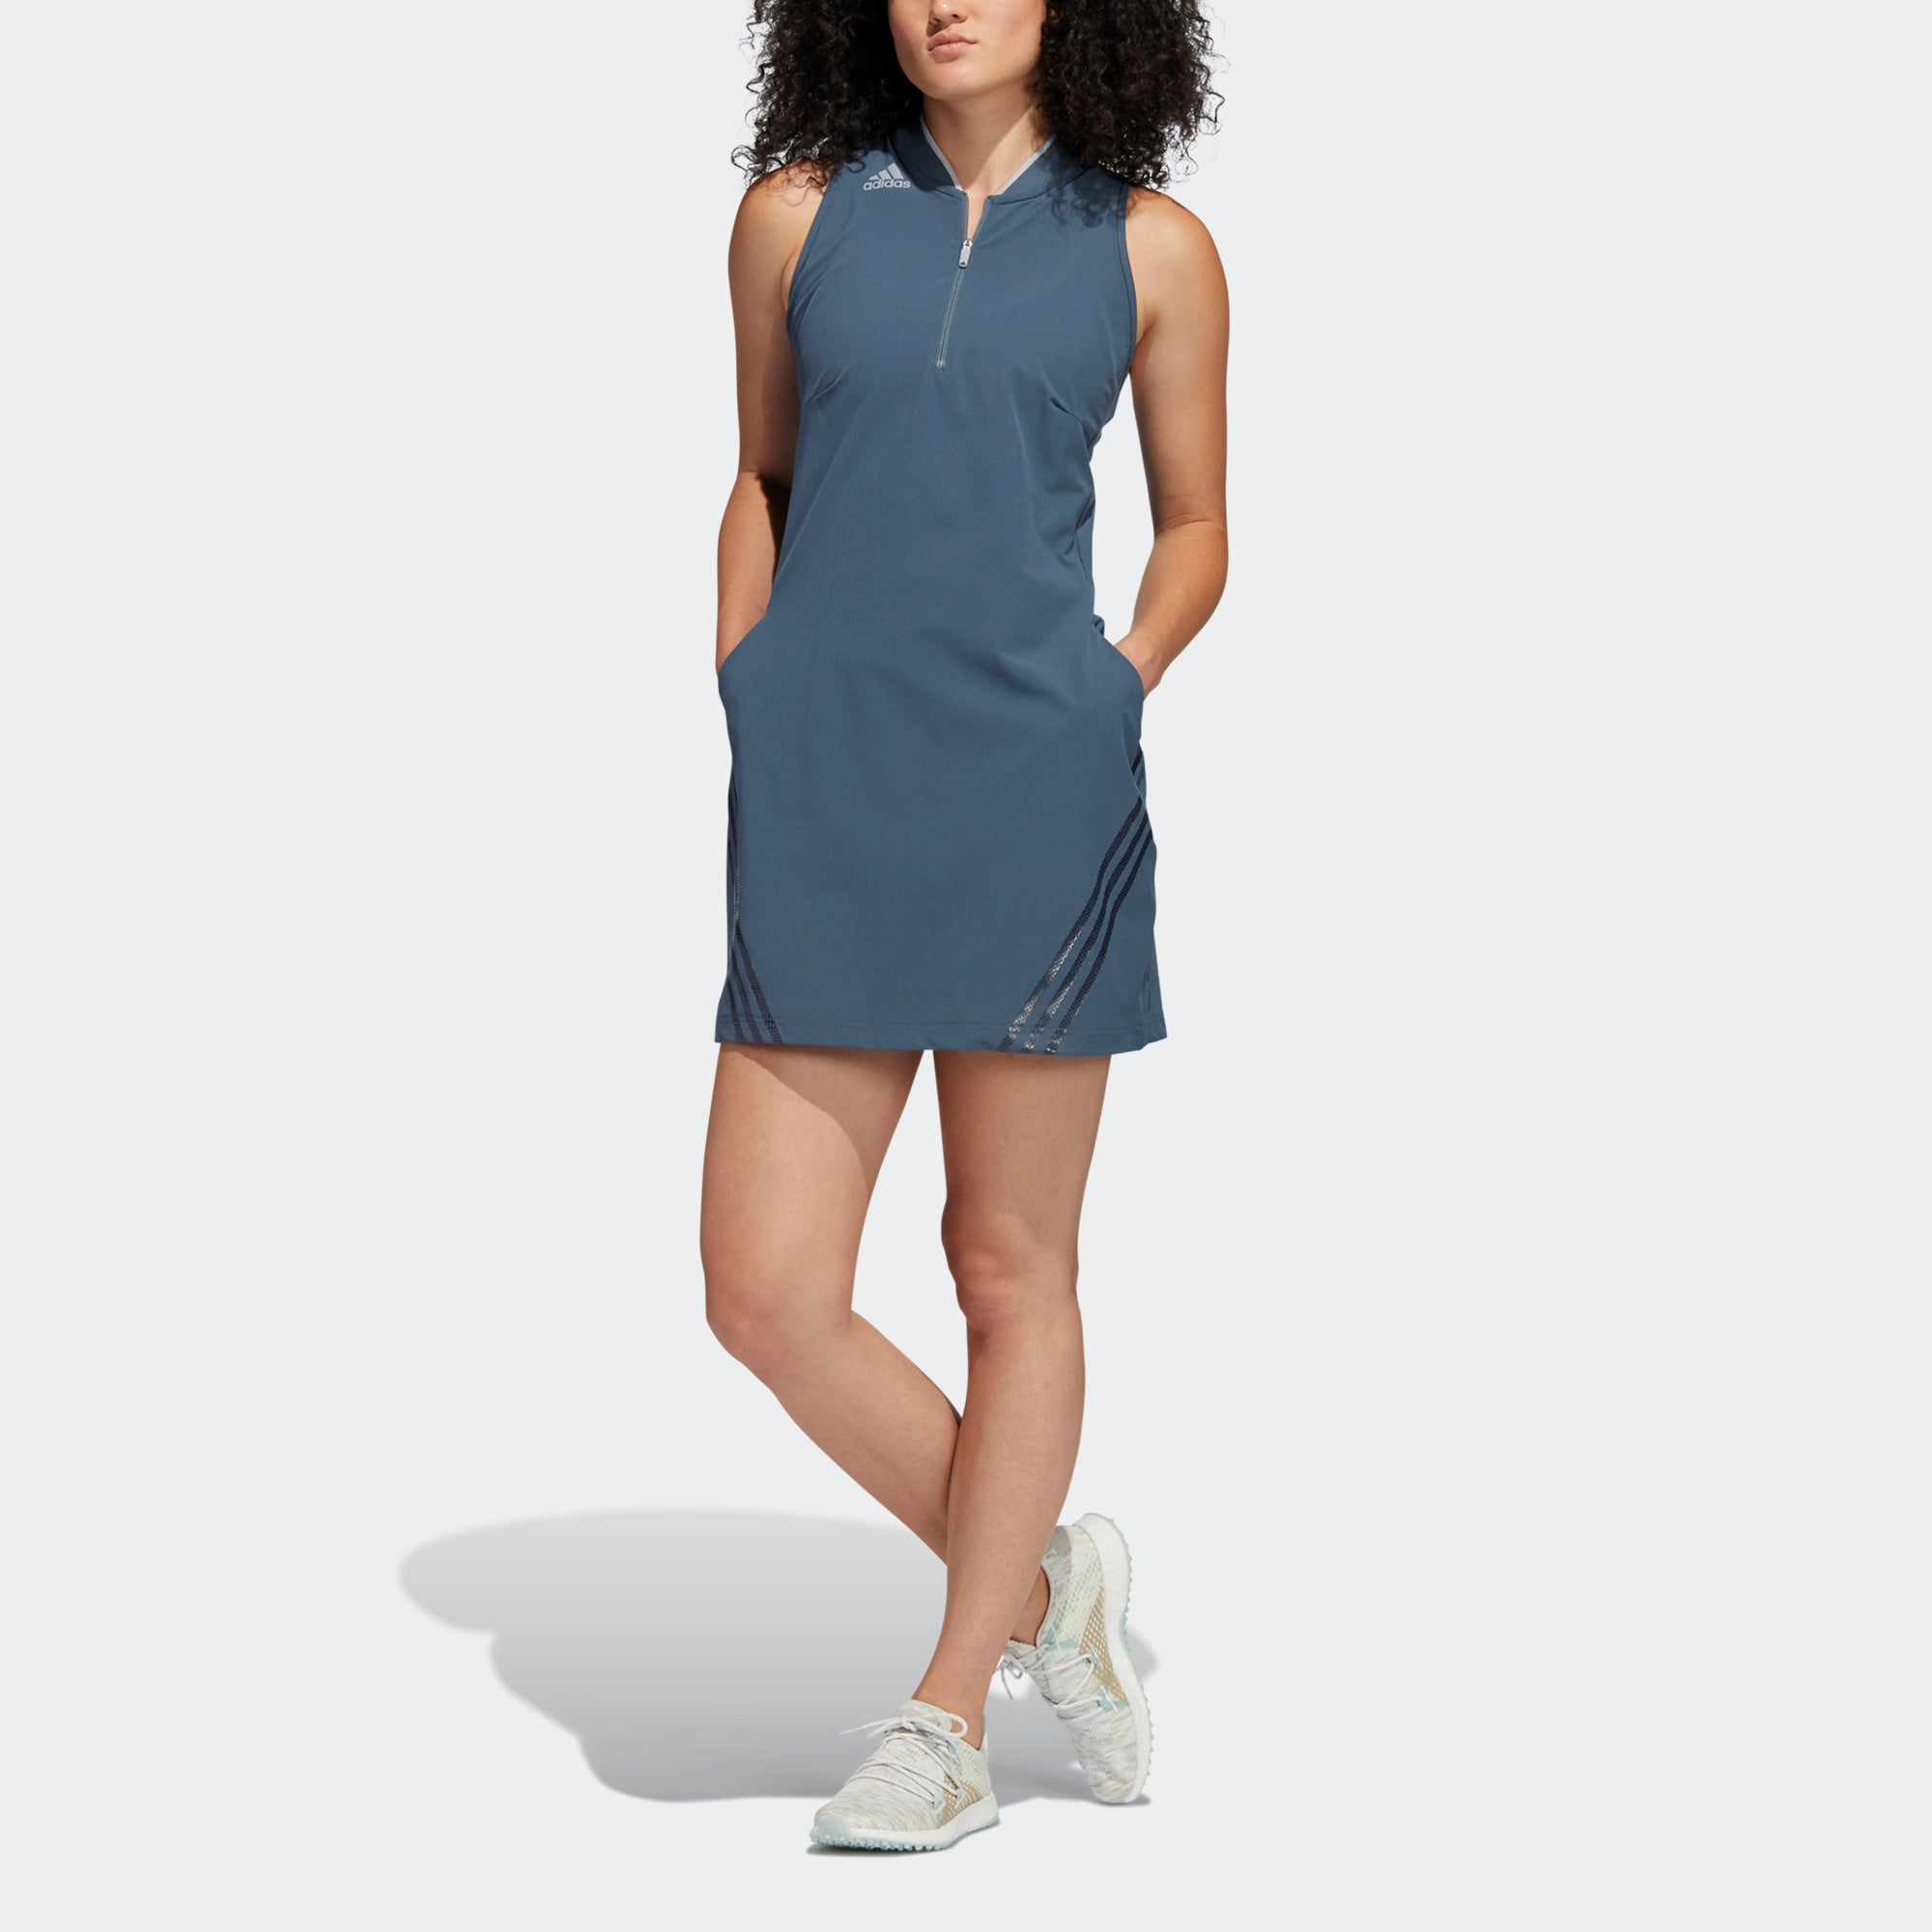 ADIDAS 3 Stripes Dress Lagacy Blue